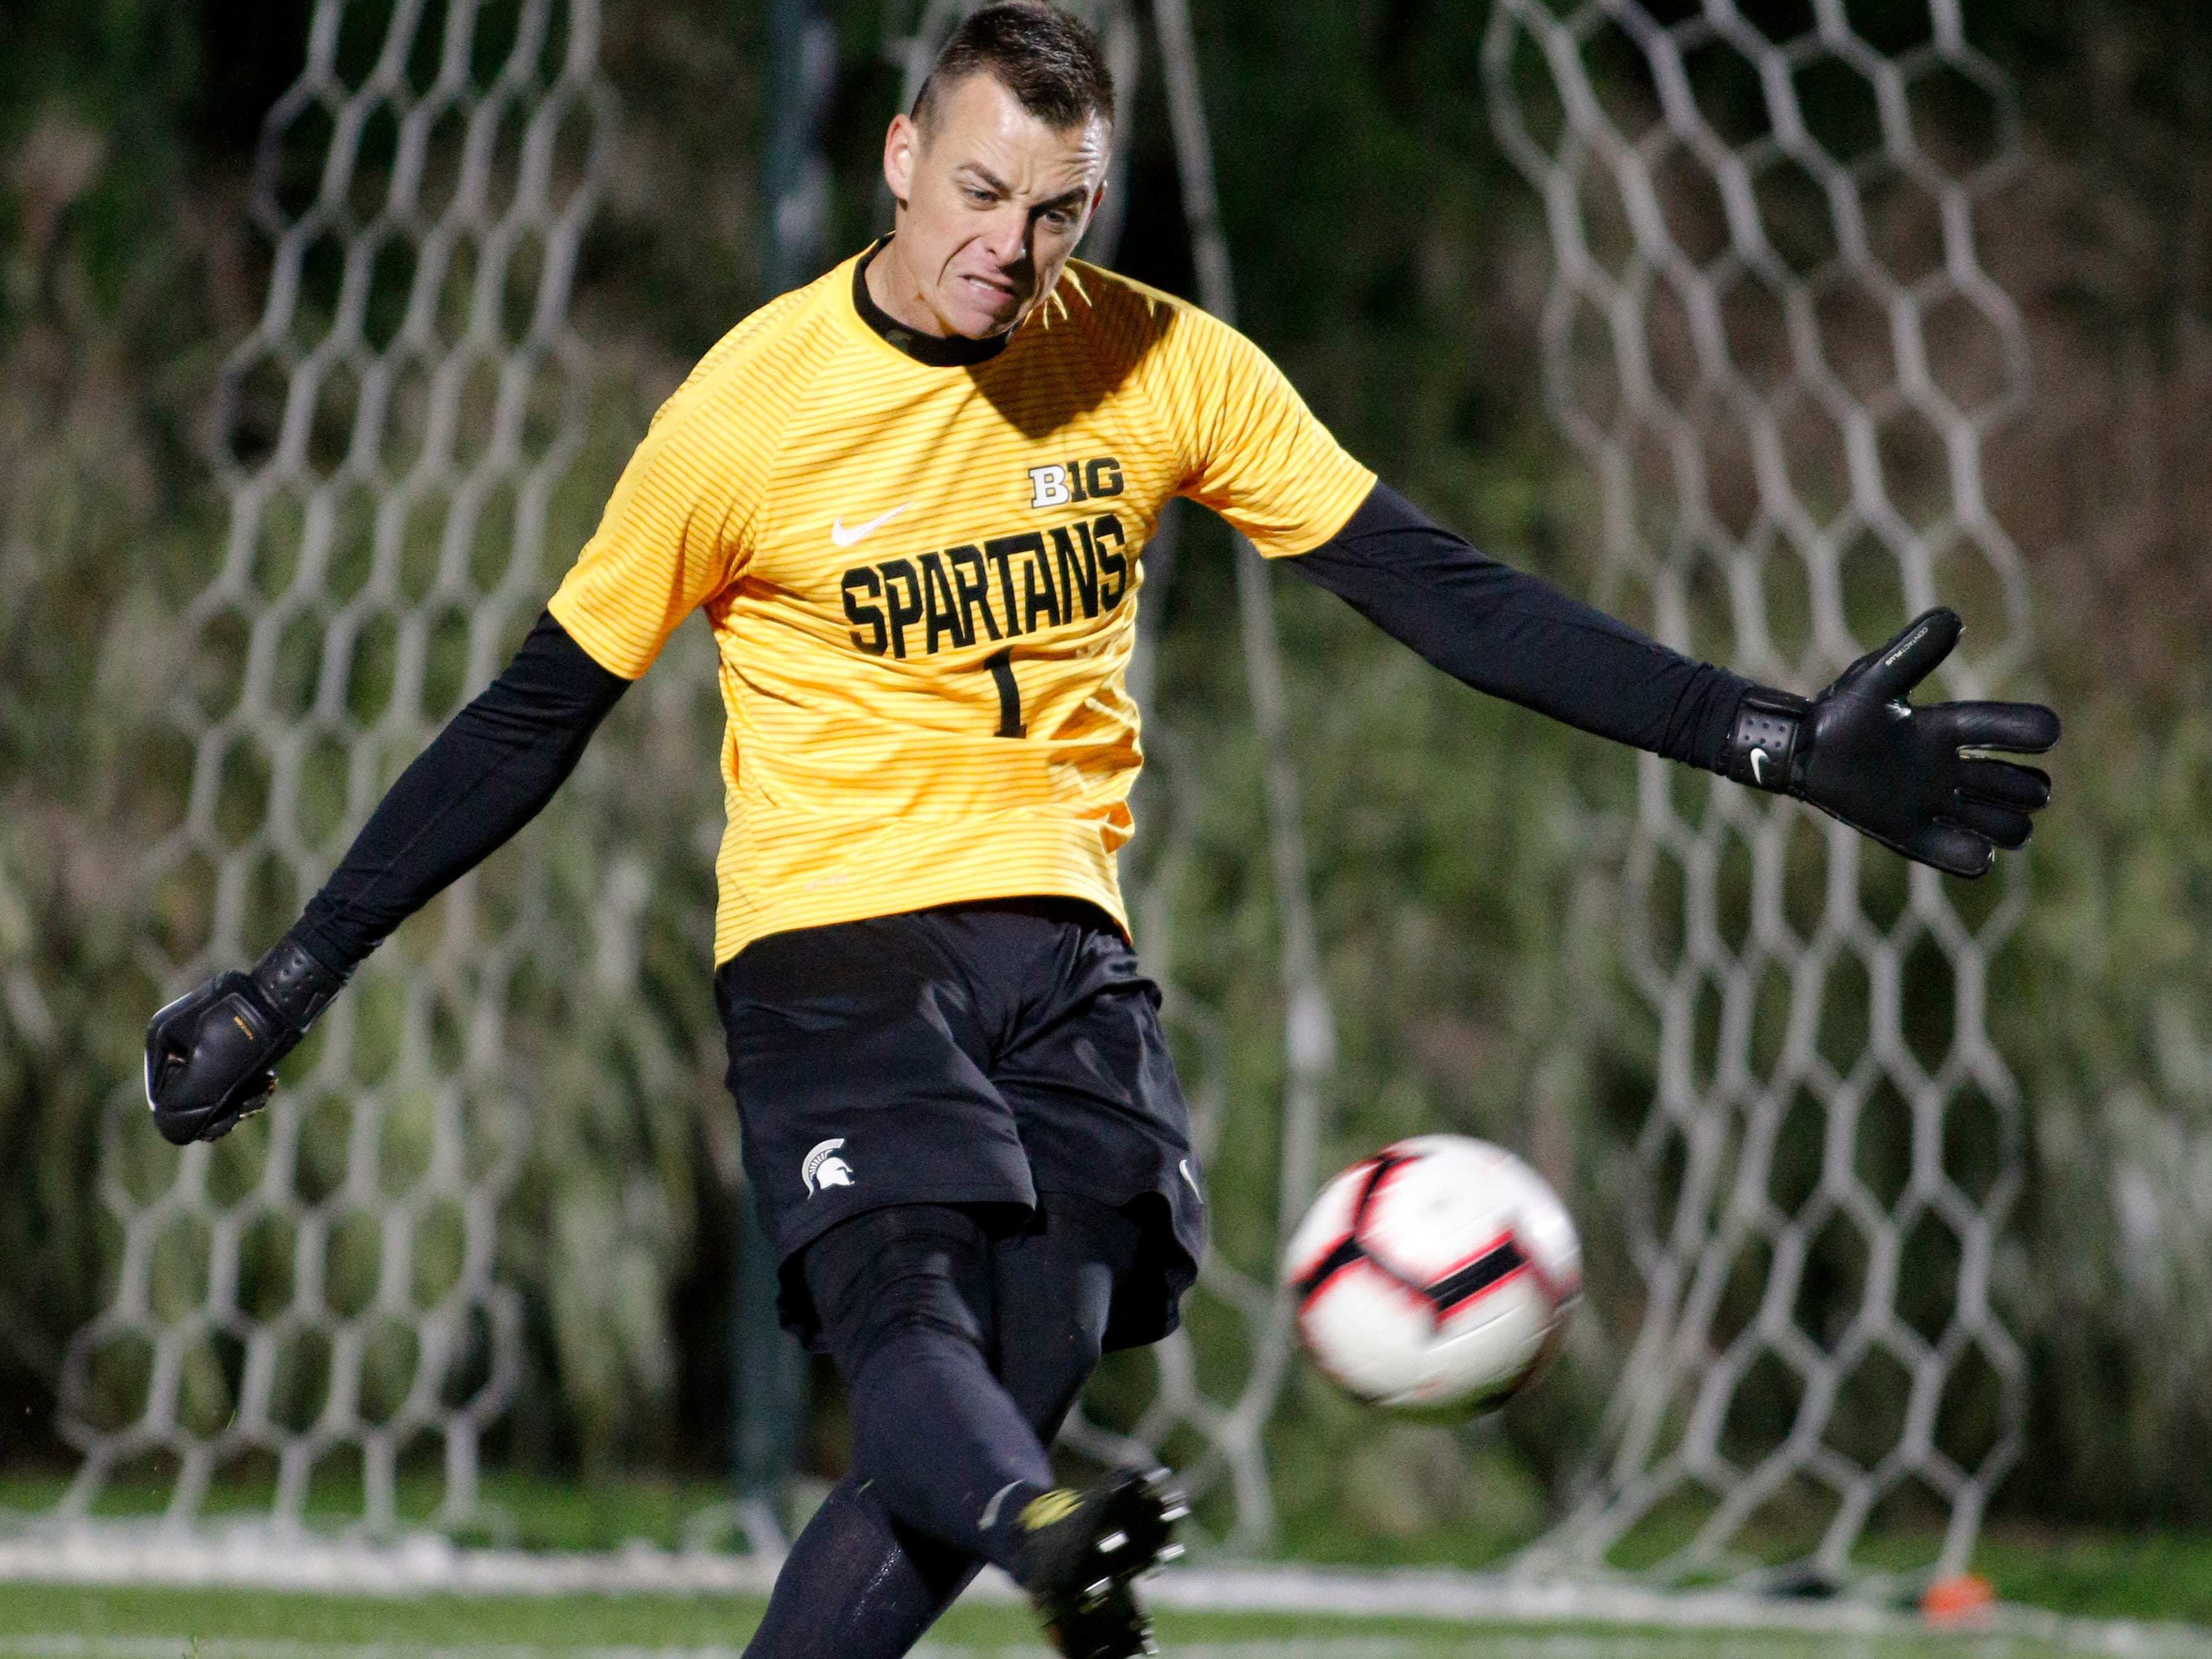 Michigan State goalkeeper Jimmy Hague clears the ball against Michigan, Tuesday, Oct. 23, 2018, in East Lansing, Mich. The teams played to a 1-1 draw.